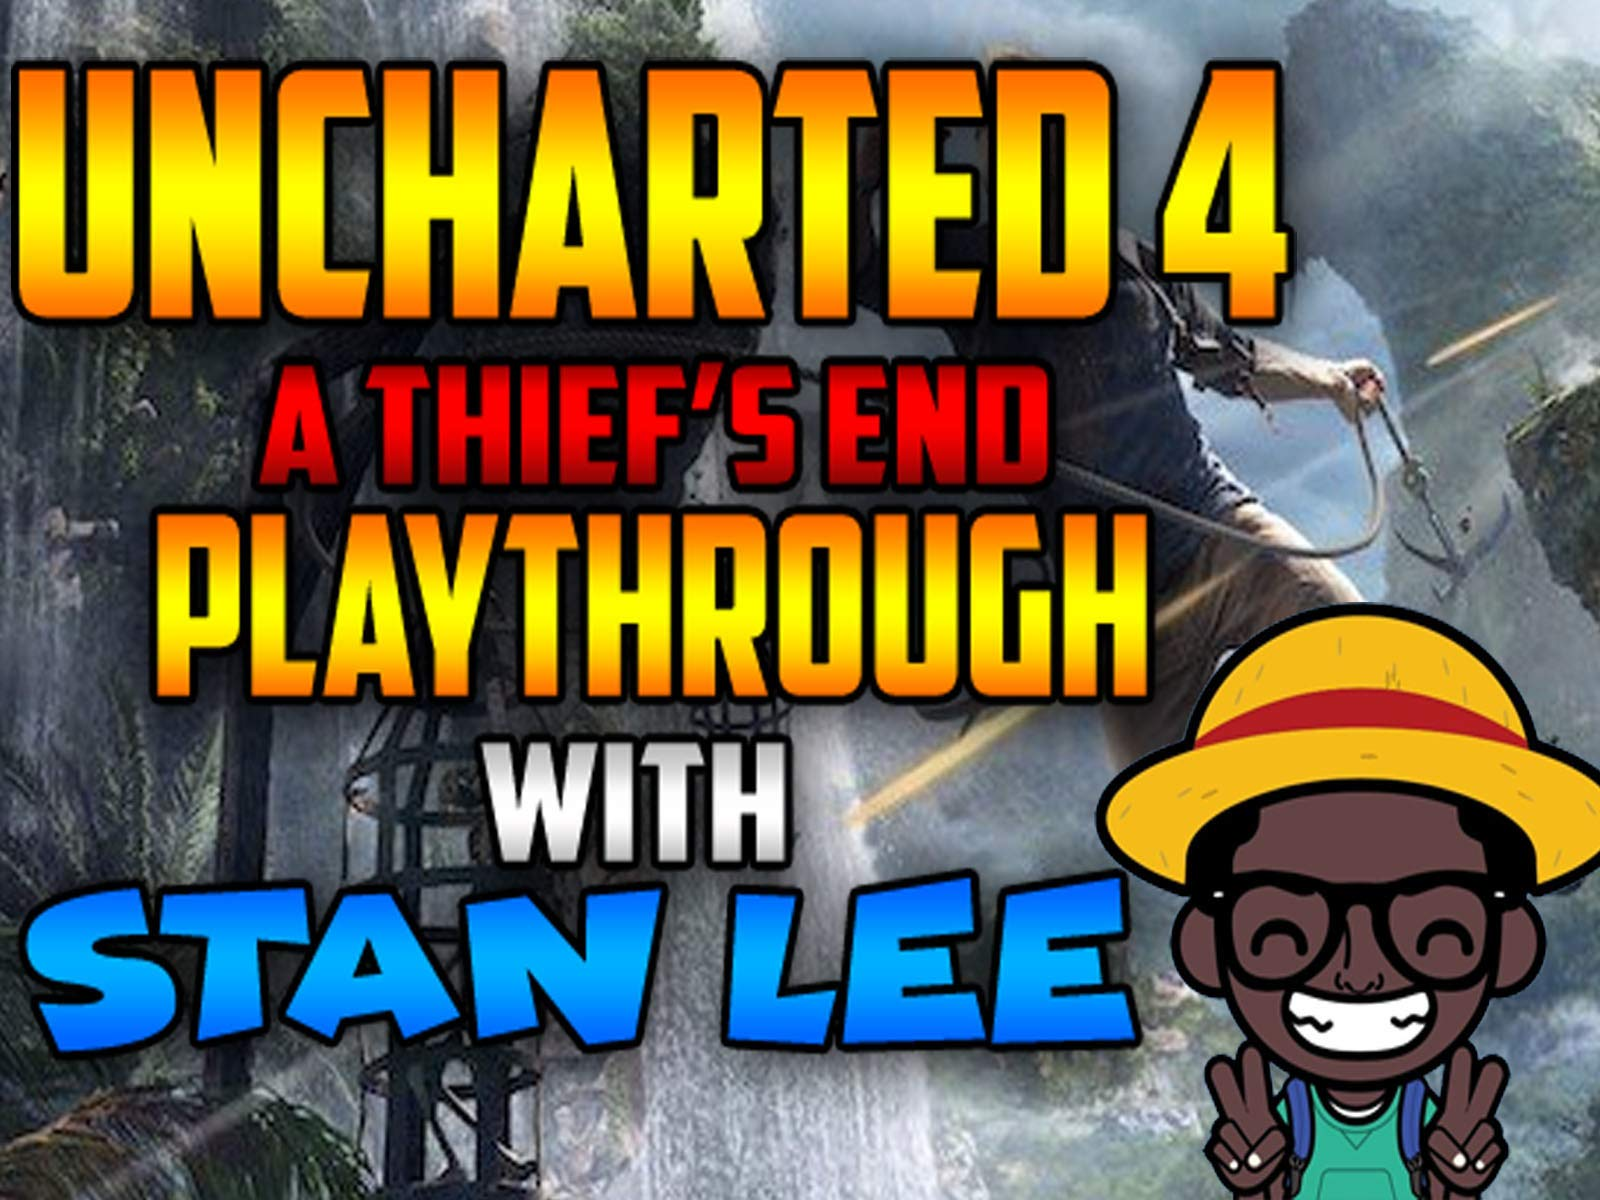 Uncharted 4 A Thief's End Playthrough With Stan Lee - Season 1